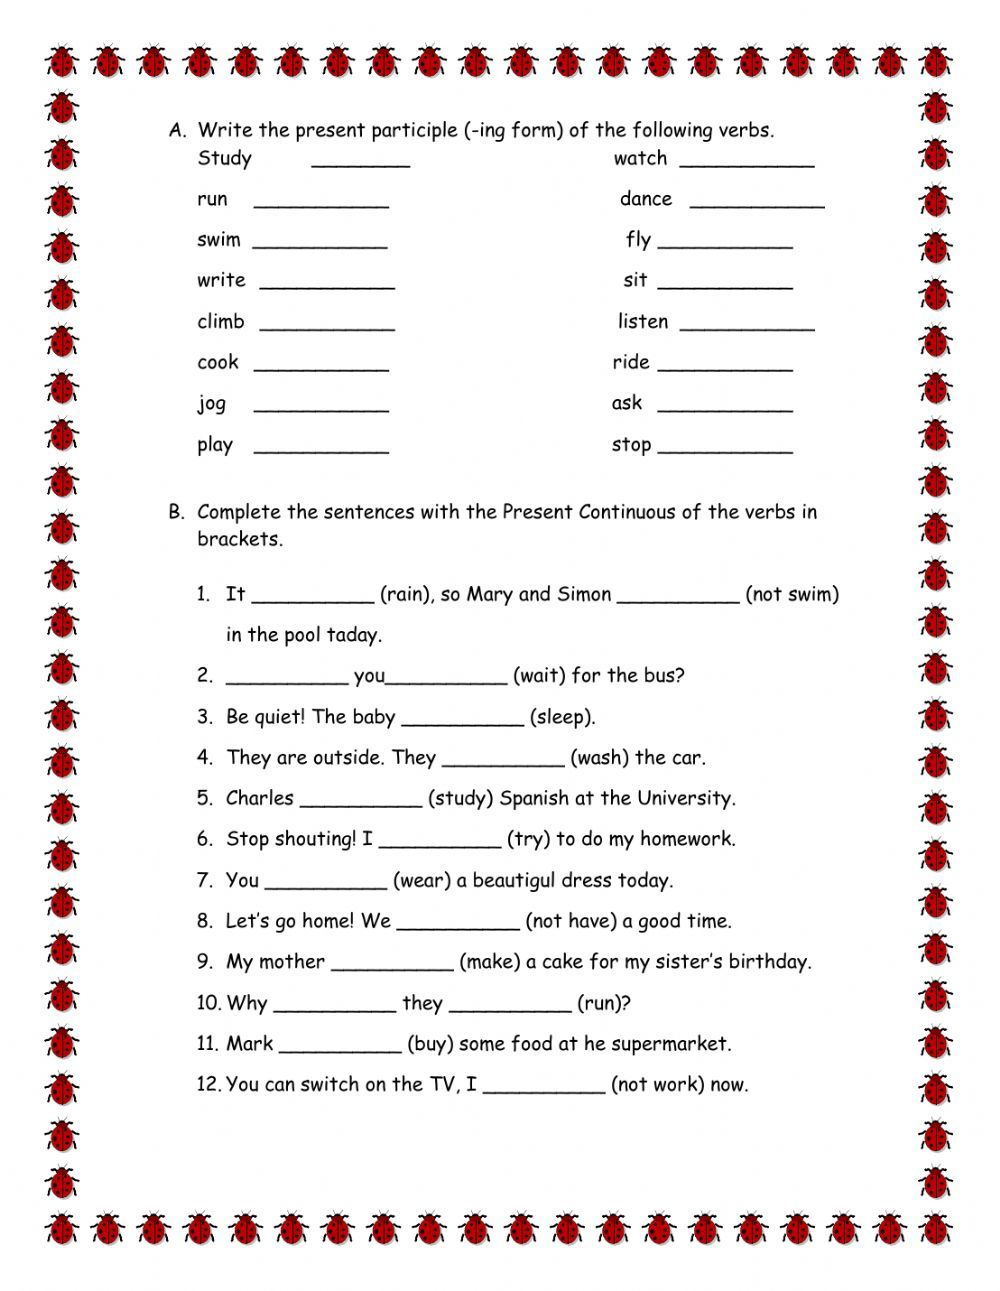 Workbooks spanish present tense practice worksheets : Present continuous interactive and downloadable worksheet. You can ...